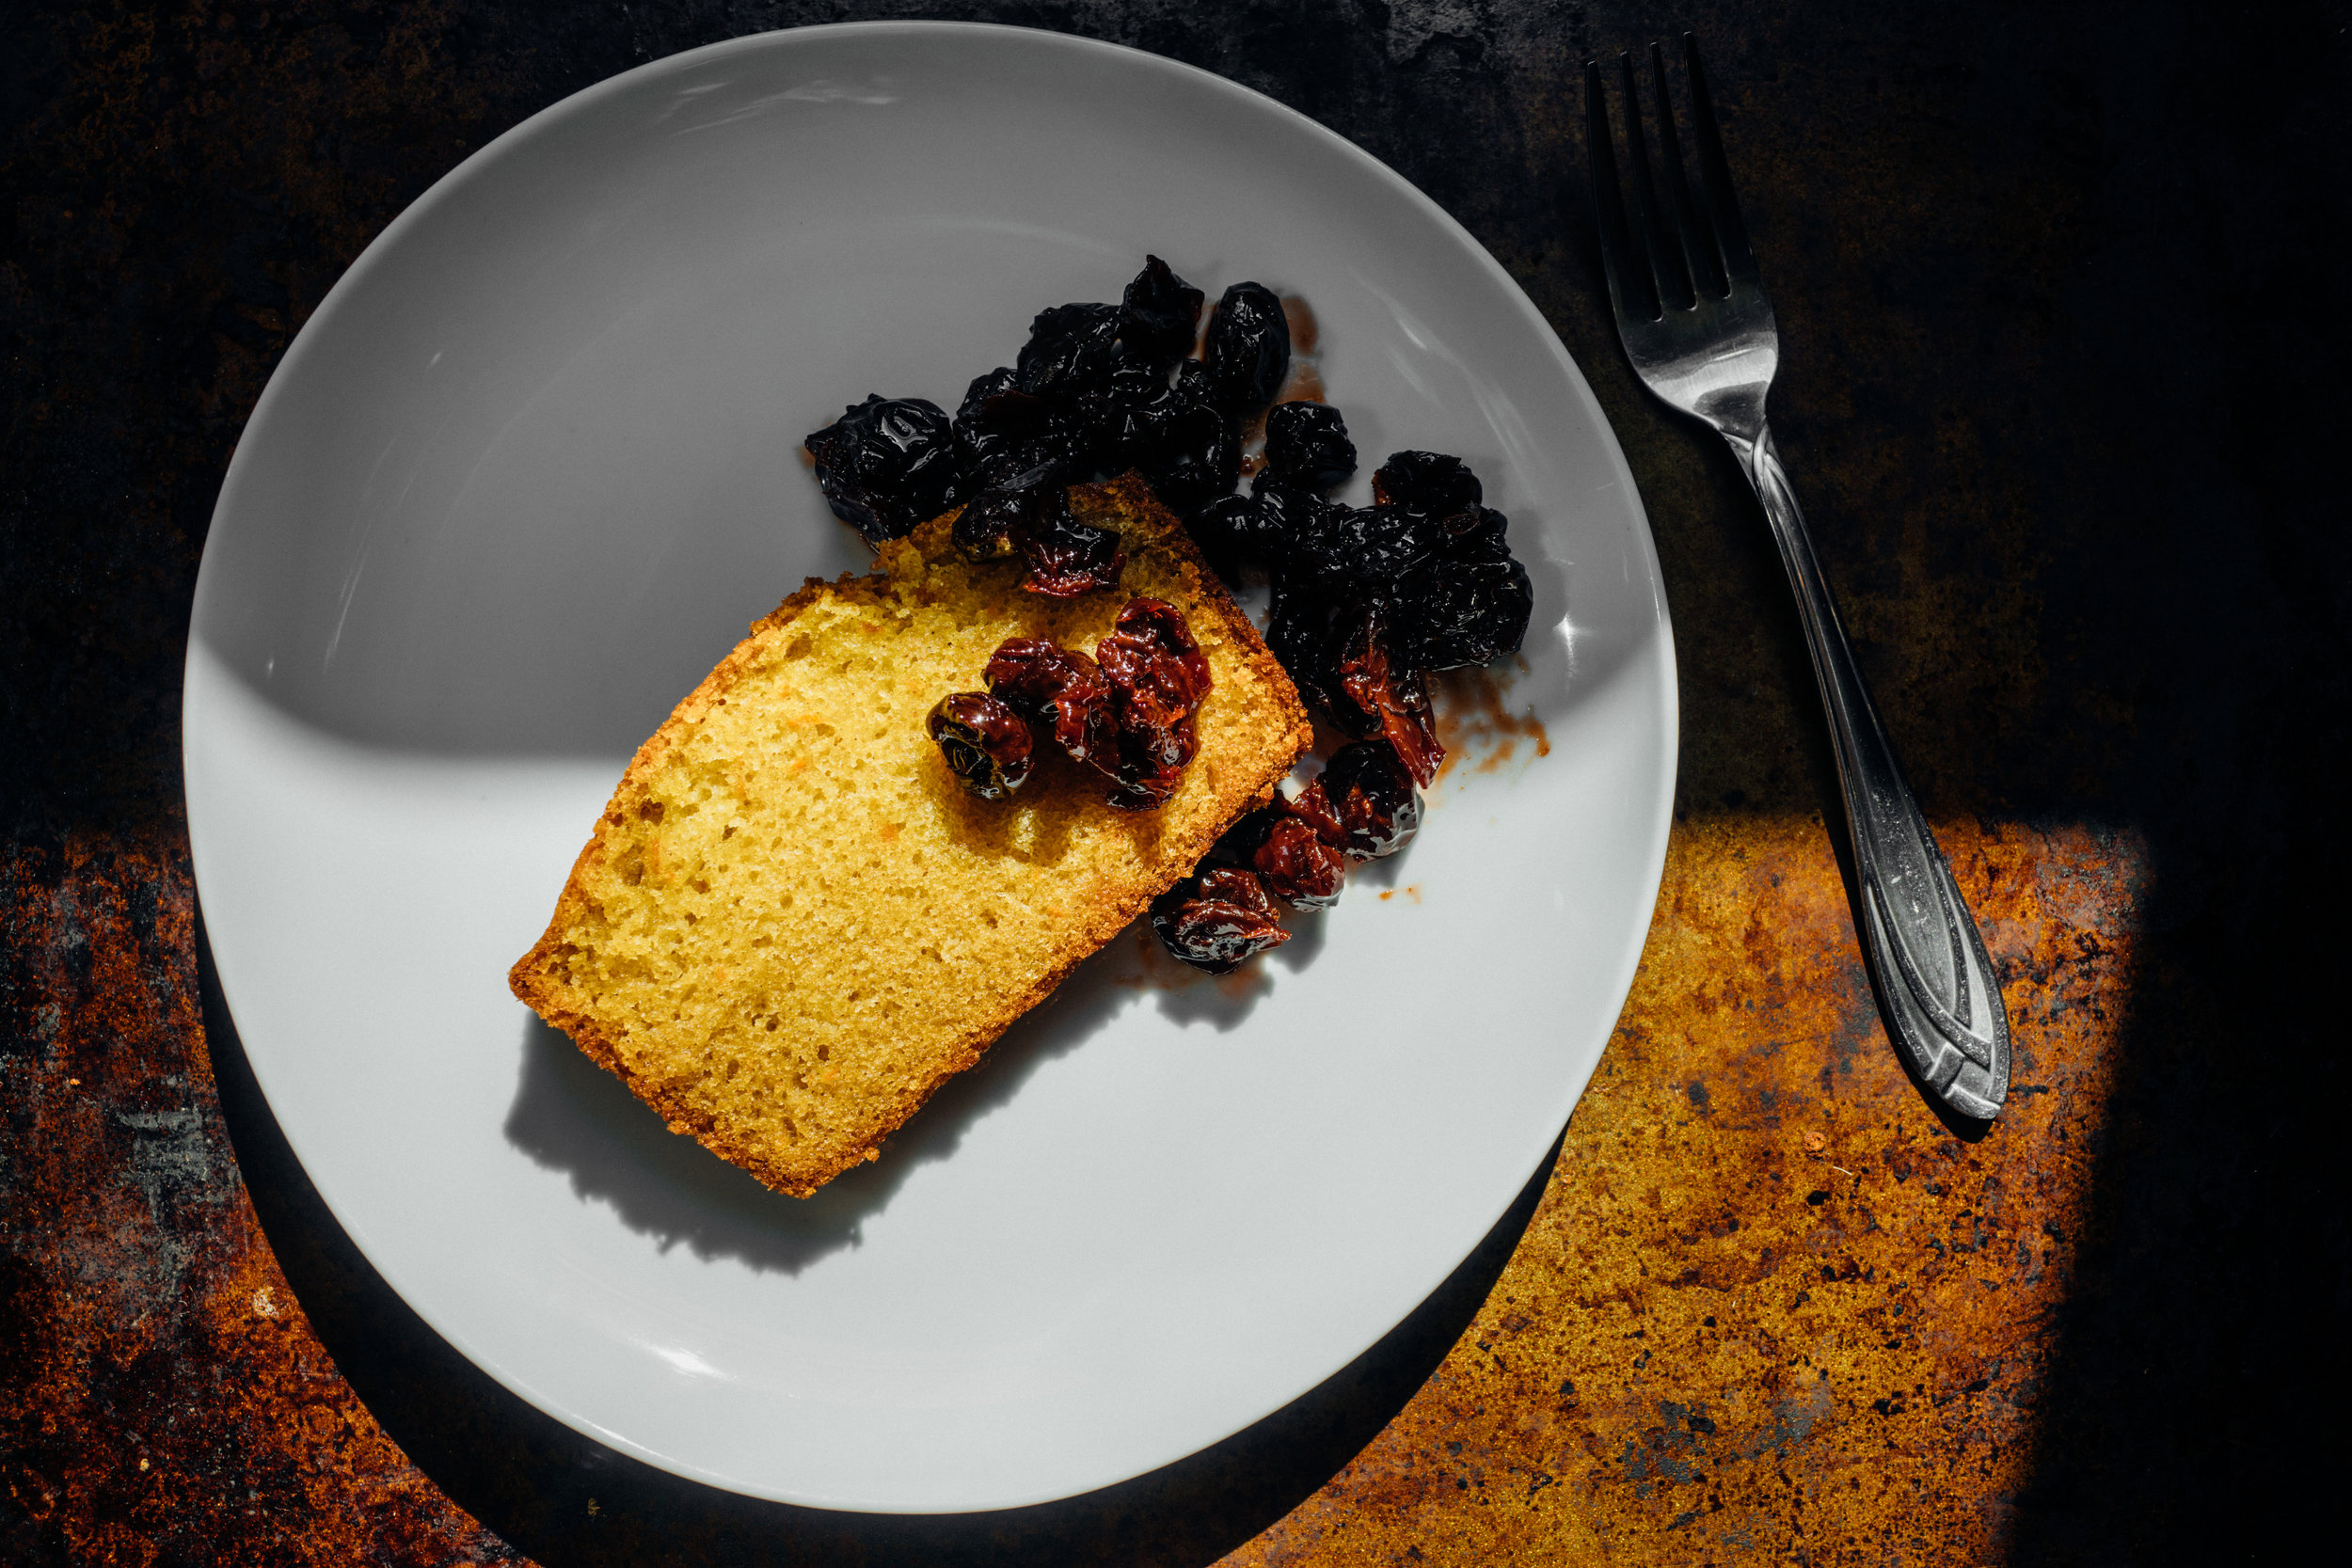 Mialiano-inspired Olive Oil Cake, with dried  amarene  cherries